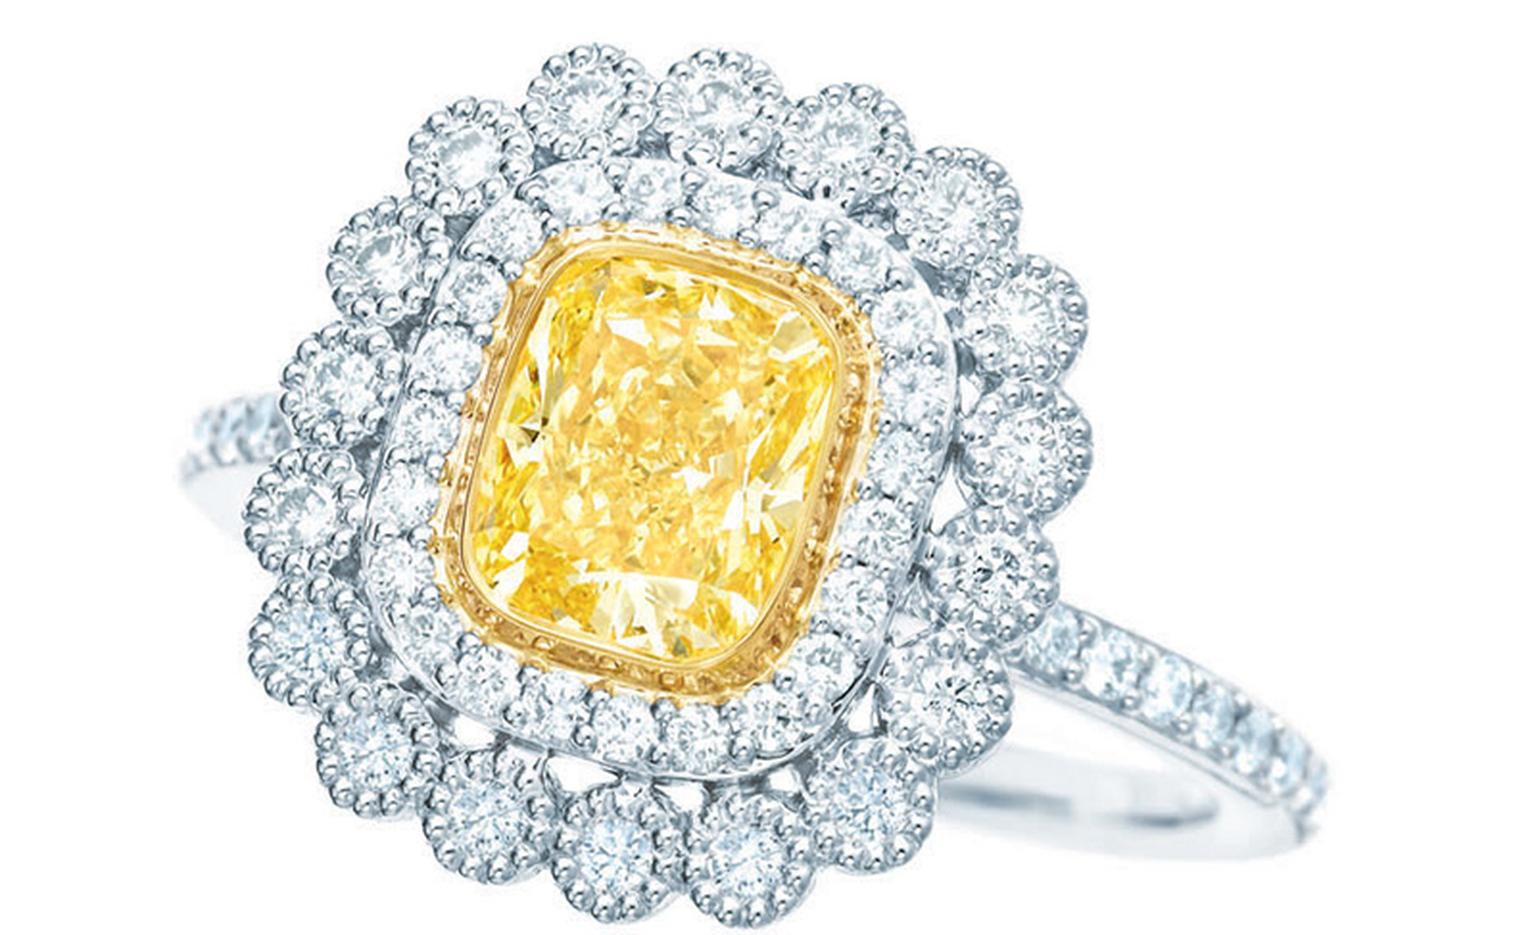 Tiffany-Enchant-yellow-and-white-diamond-rings-set-in-platinum.jpg